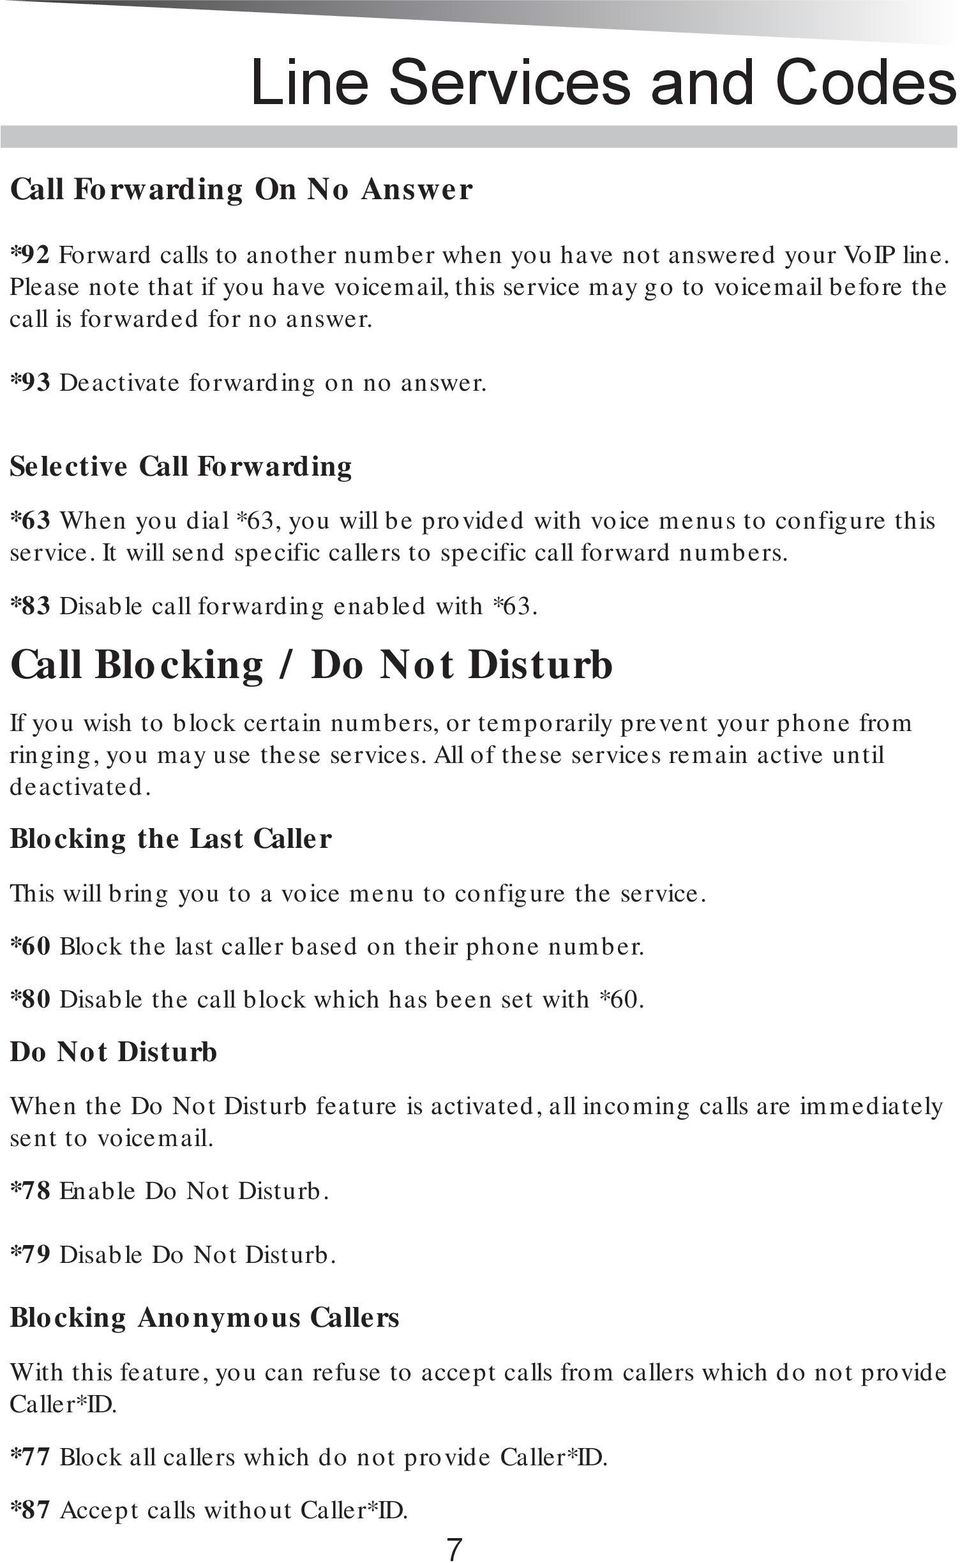 Selective Call Forwarding *63 When you dial *63, you will be provided with voice menus to configure this service. It will send specific callers to specific call forward numbers.